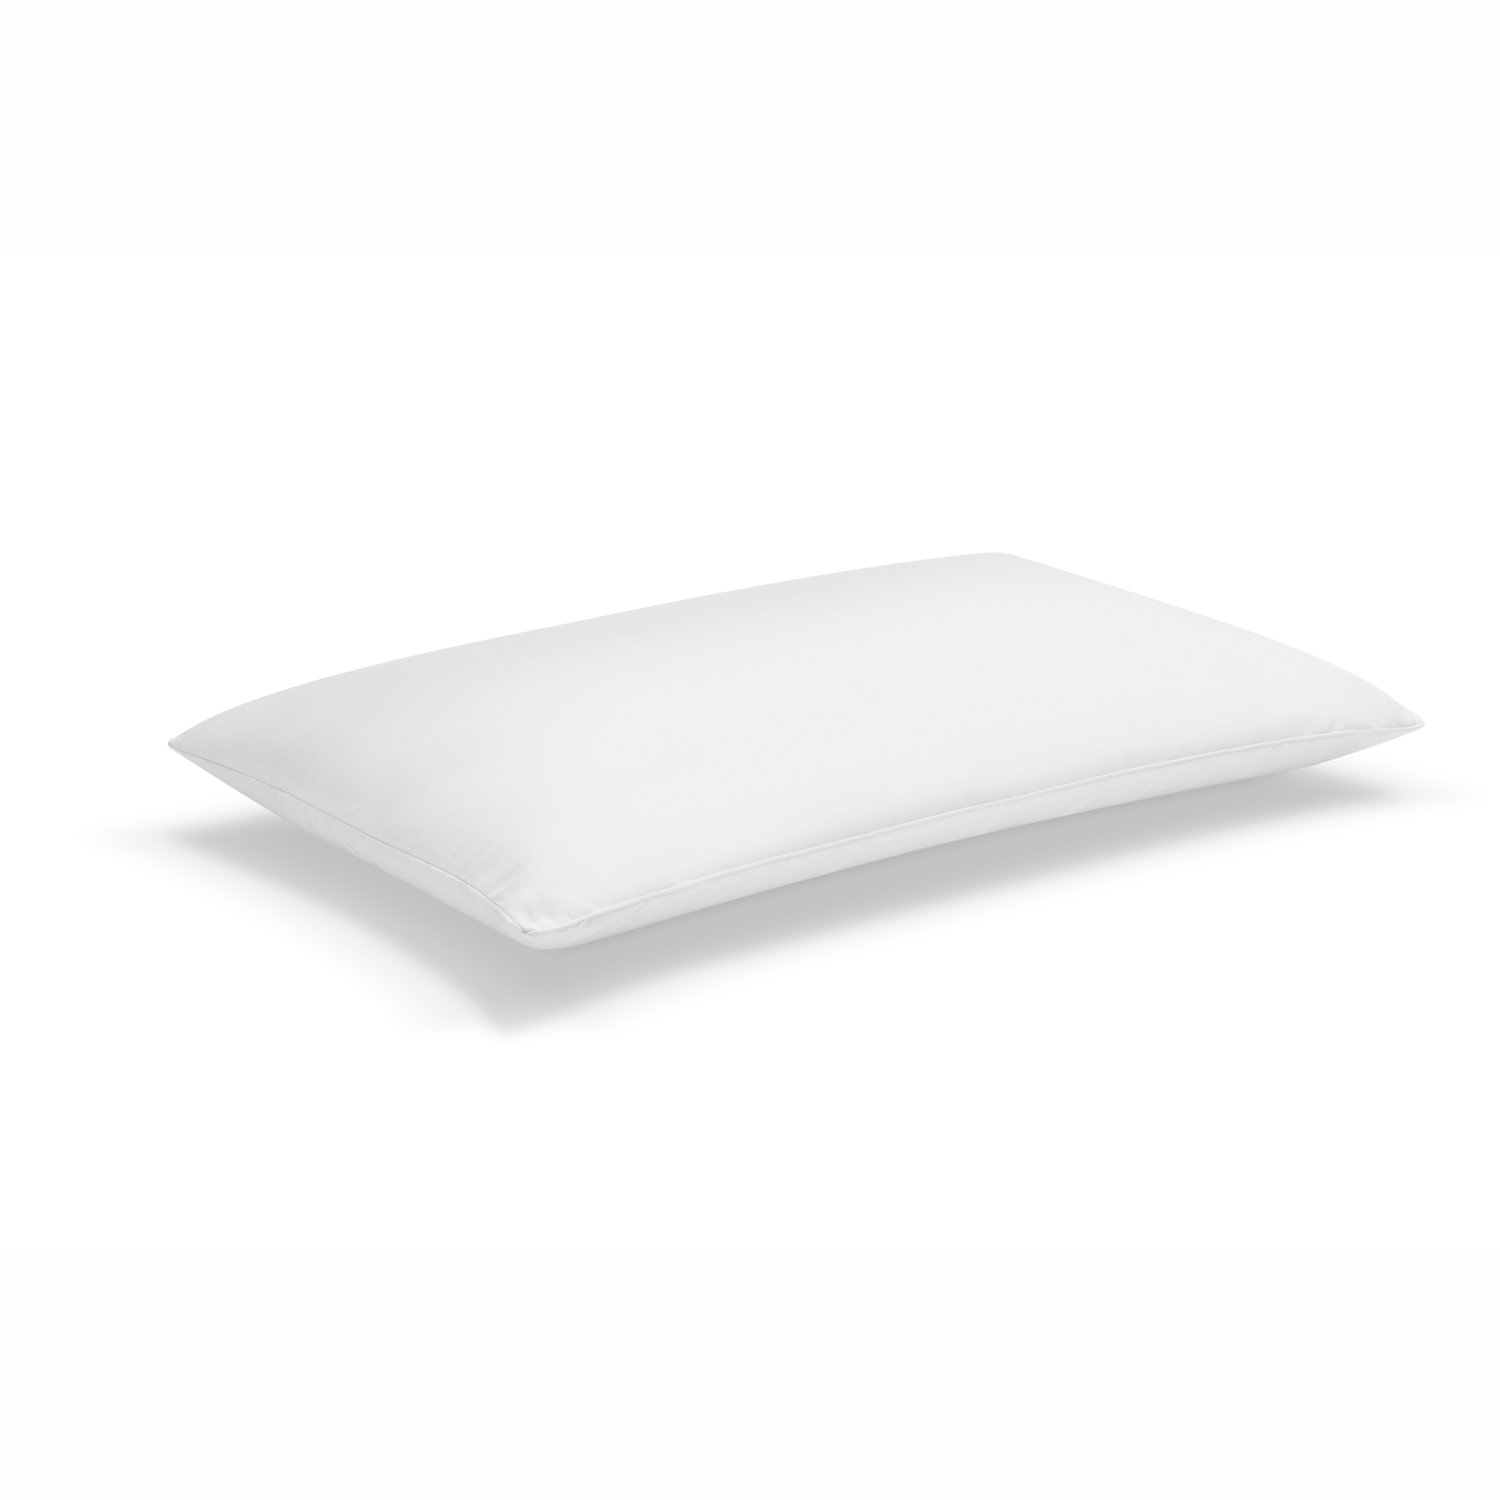 Top 10 Best Memory Foam Pillow (2020 Review & Buying Guide) 6